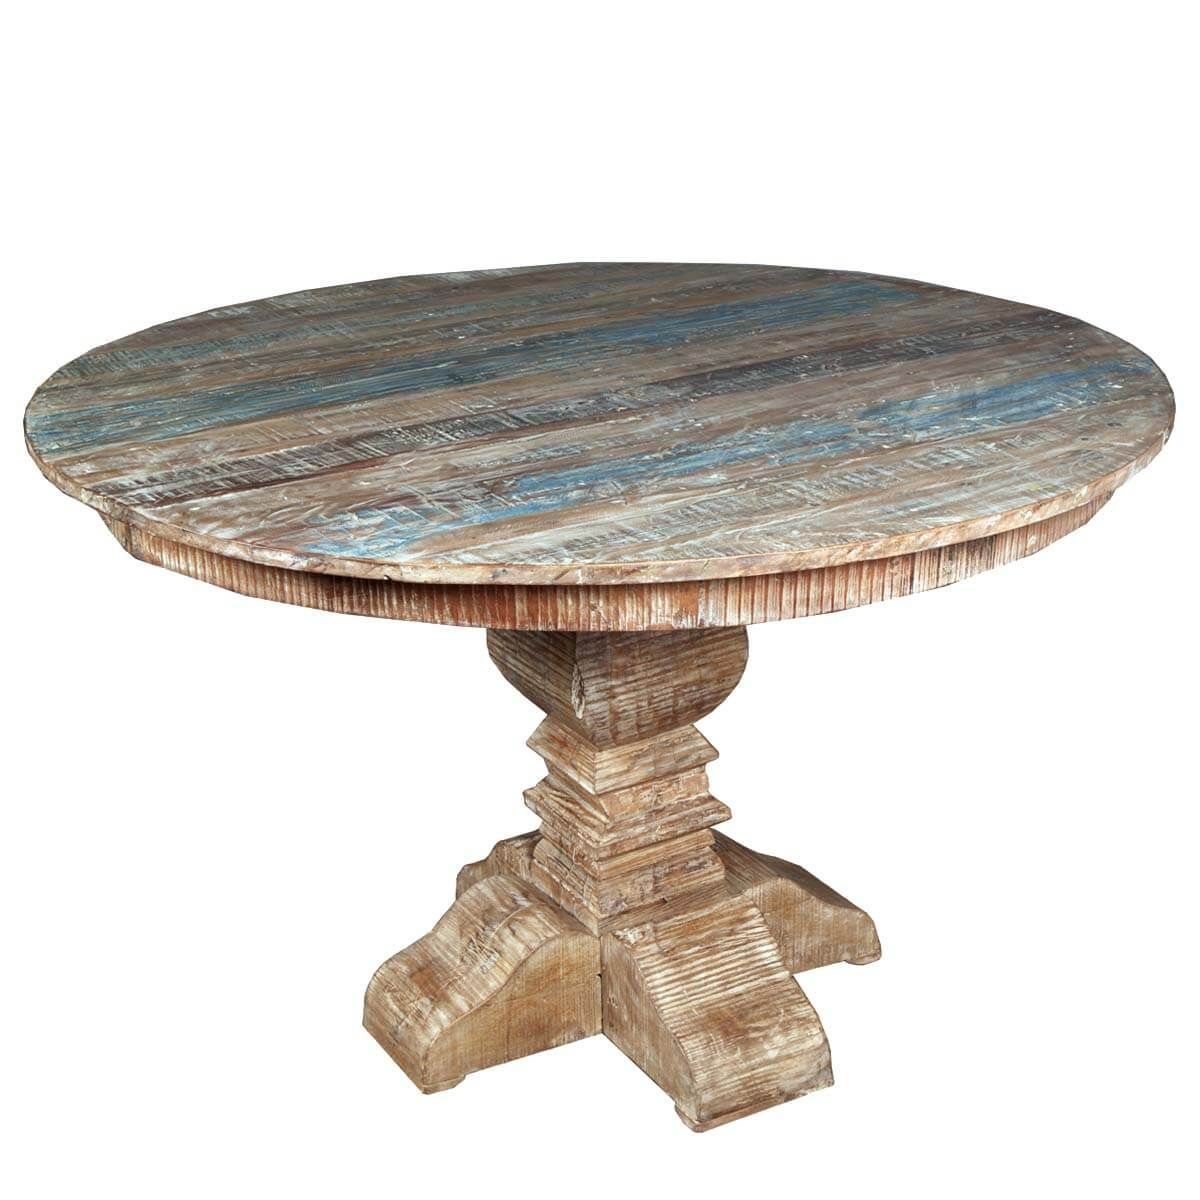 Pin By Eddie Matheney On Diy Round Wood Dining Tables Reclaimed Wood Round Dining Table Rustic Round Dining Table Distressed Dining Table